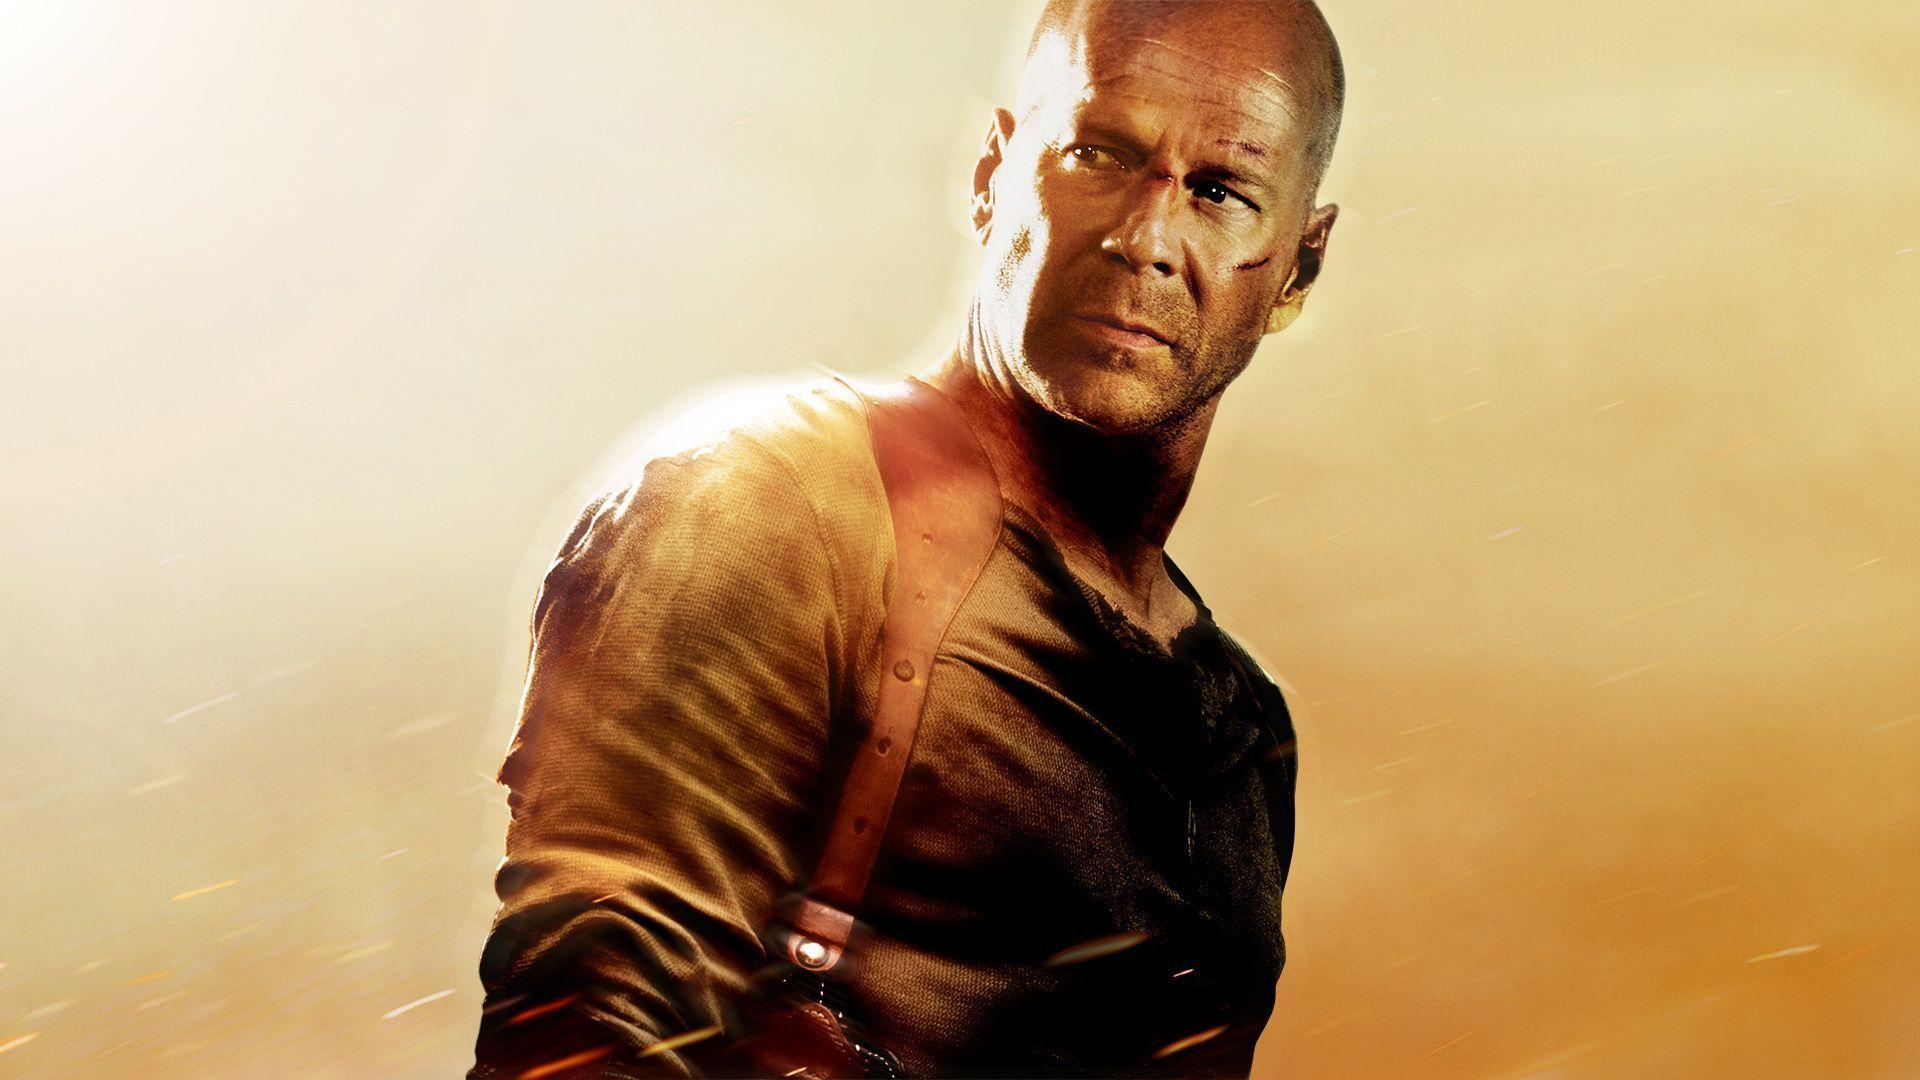 10 Bruce Willis Die Hard Movie HD Wallpapers | WallpapersinHD